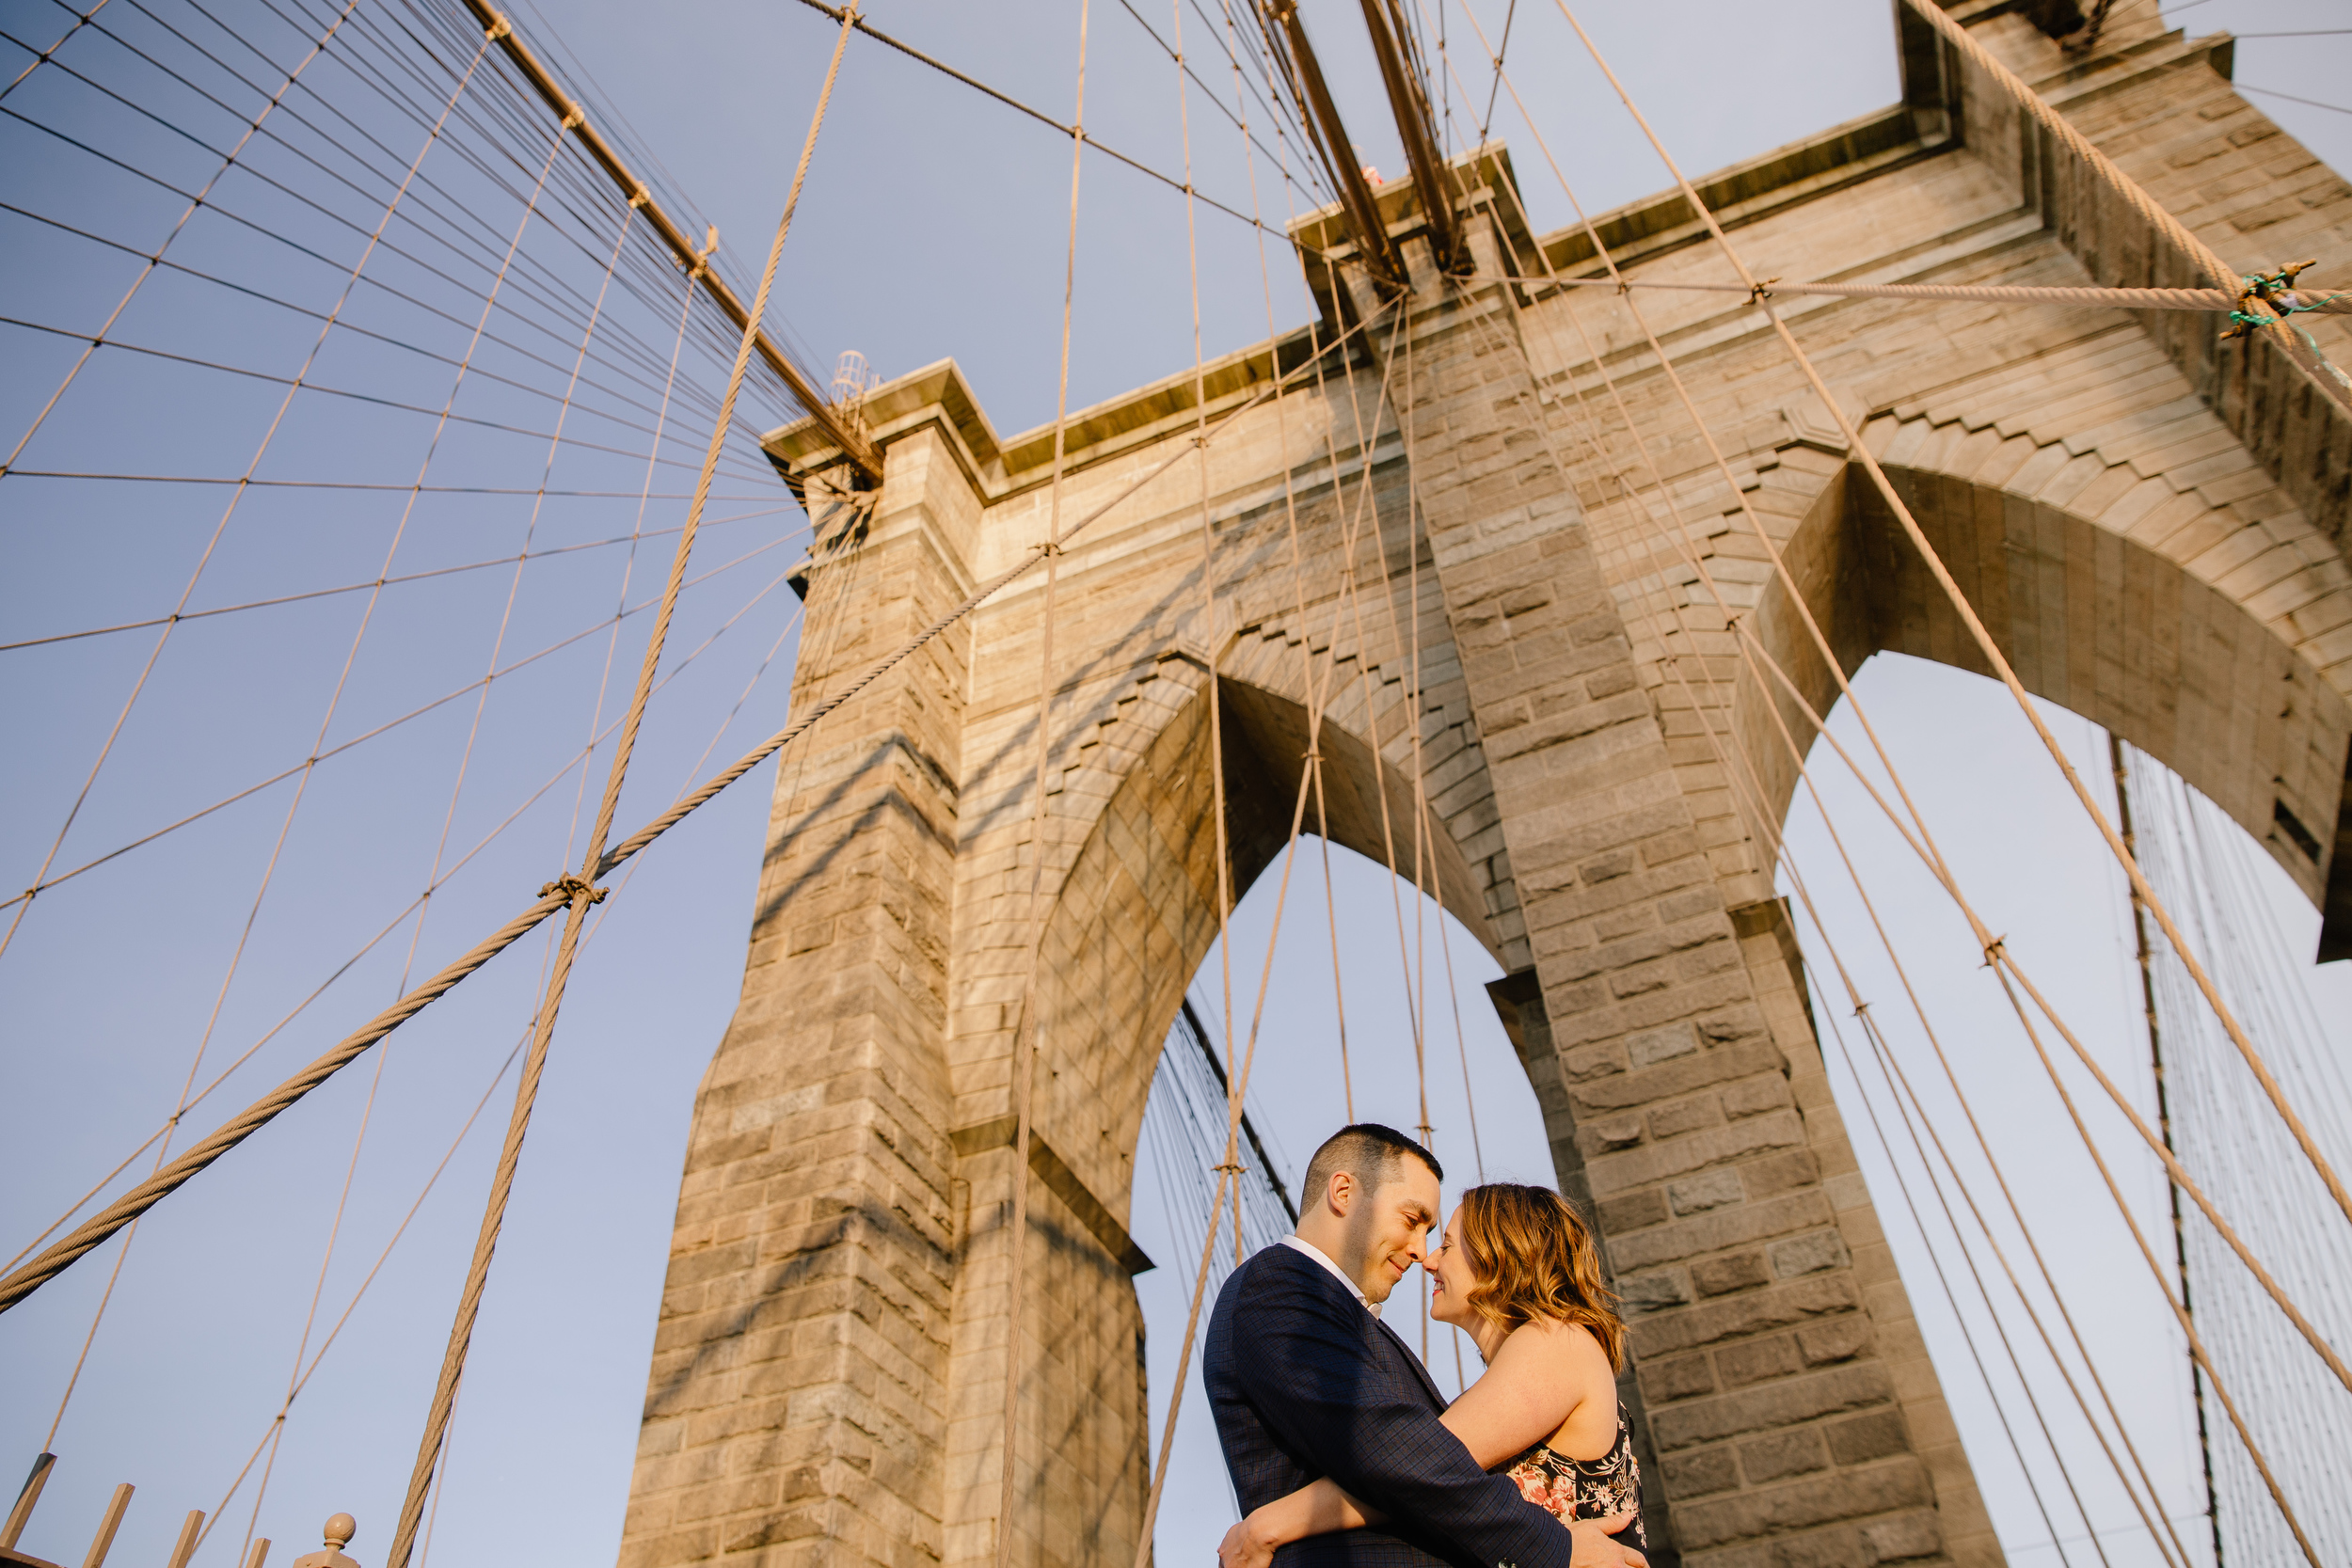 engagement session inspiration at the brooklyn bridge and views of the sky